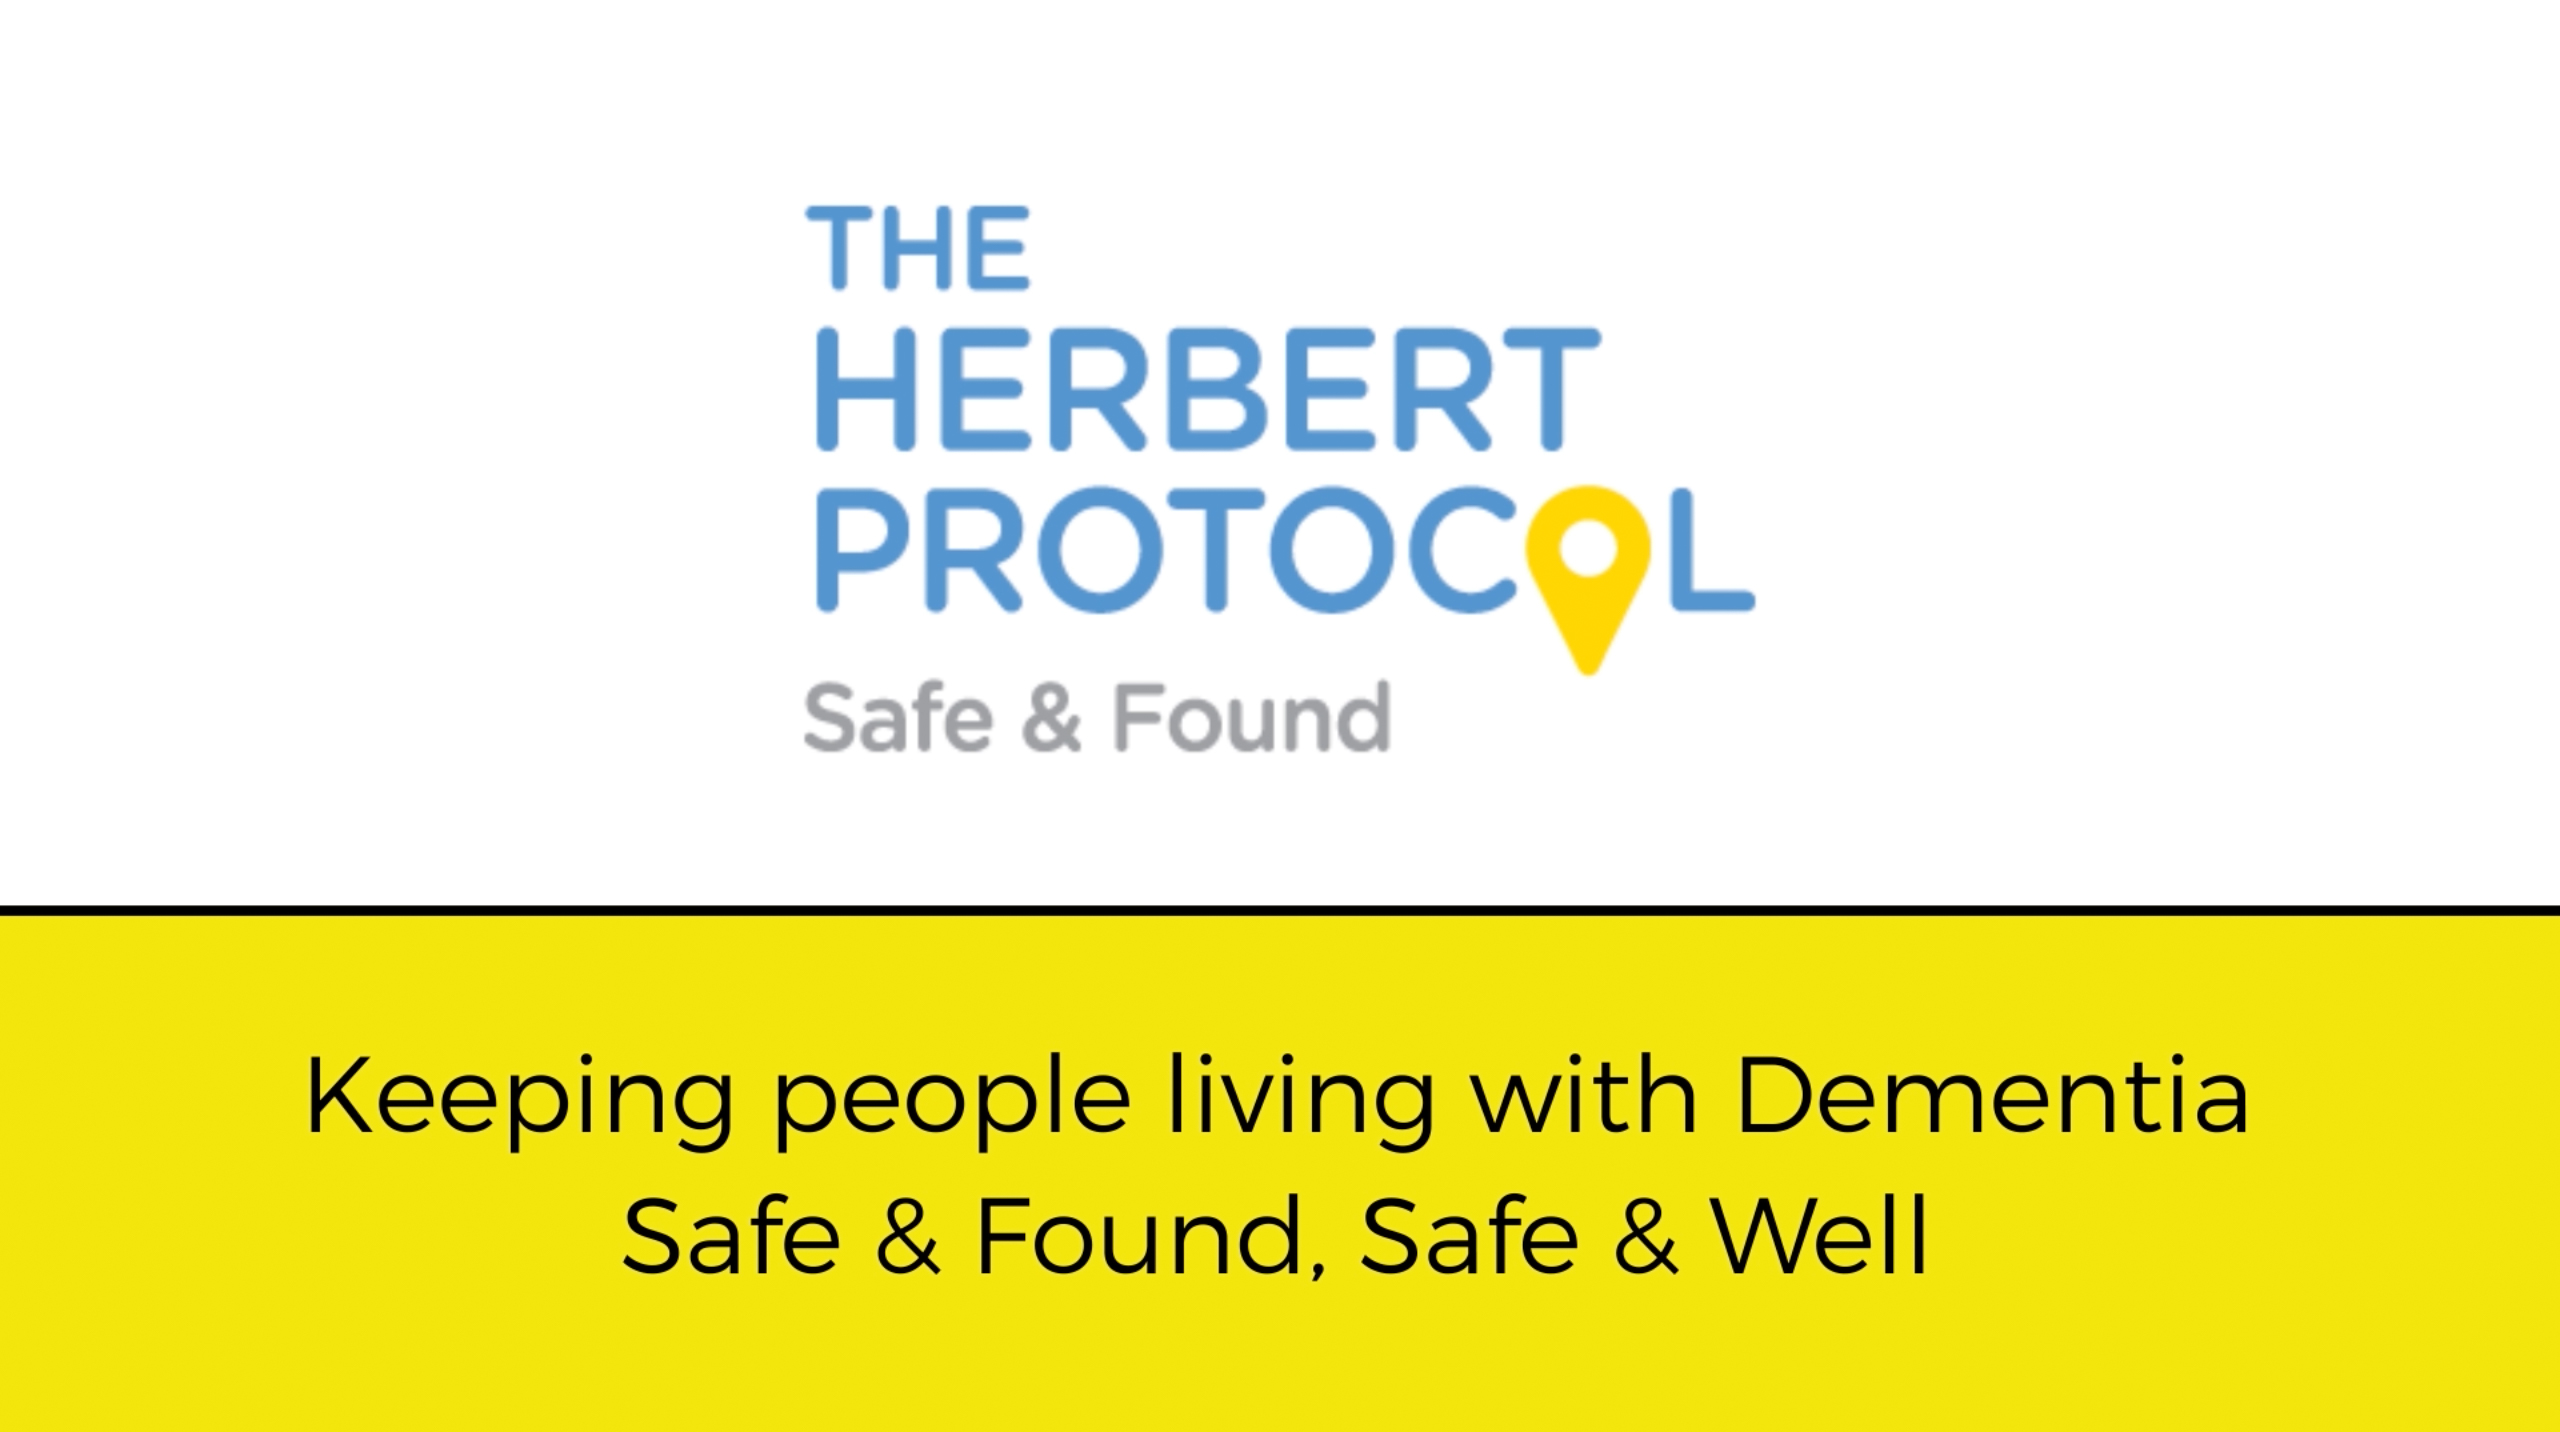 Keeping People Living With Dementia: Safe & Found, Safe & Well